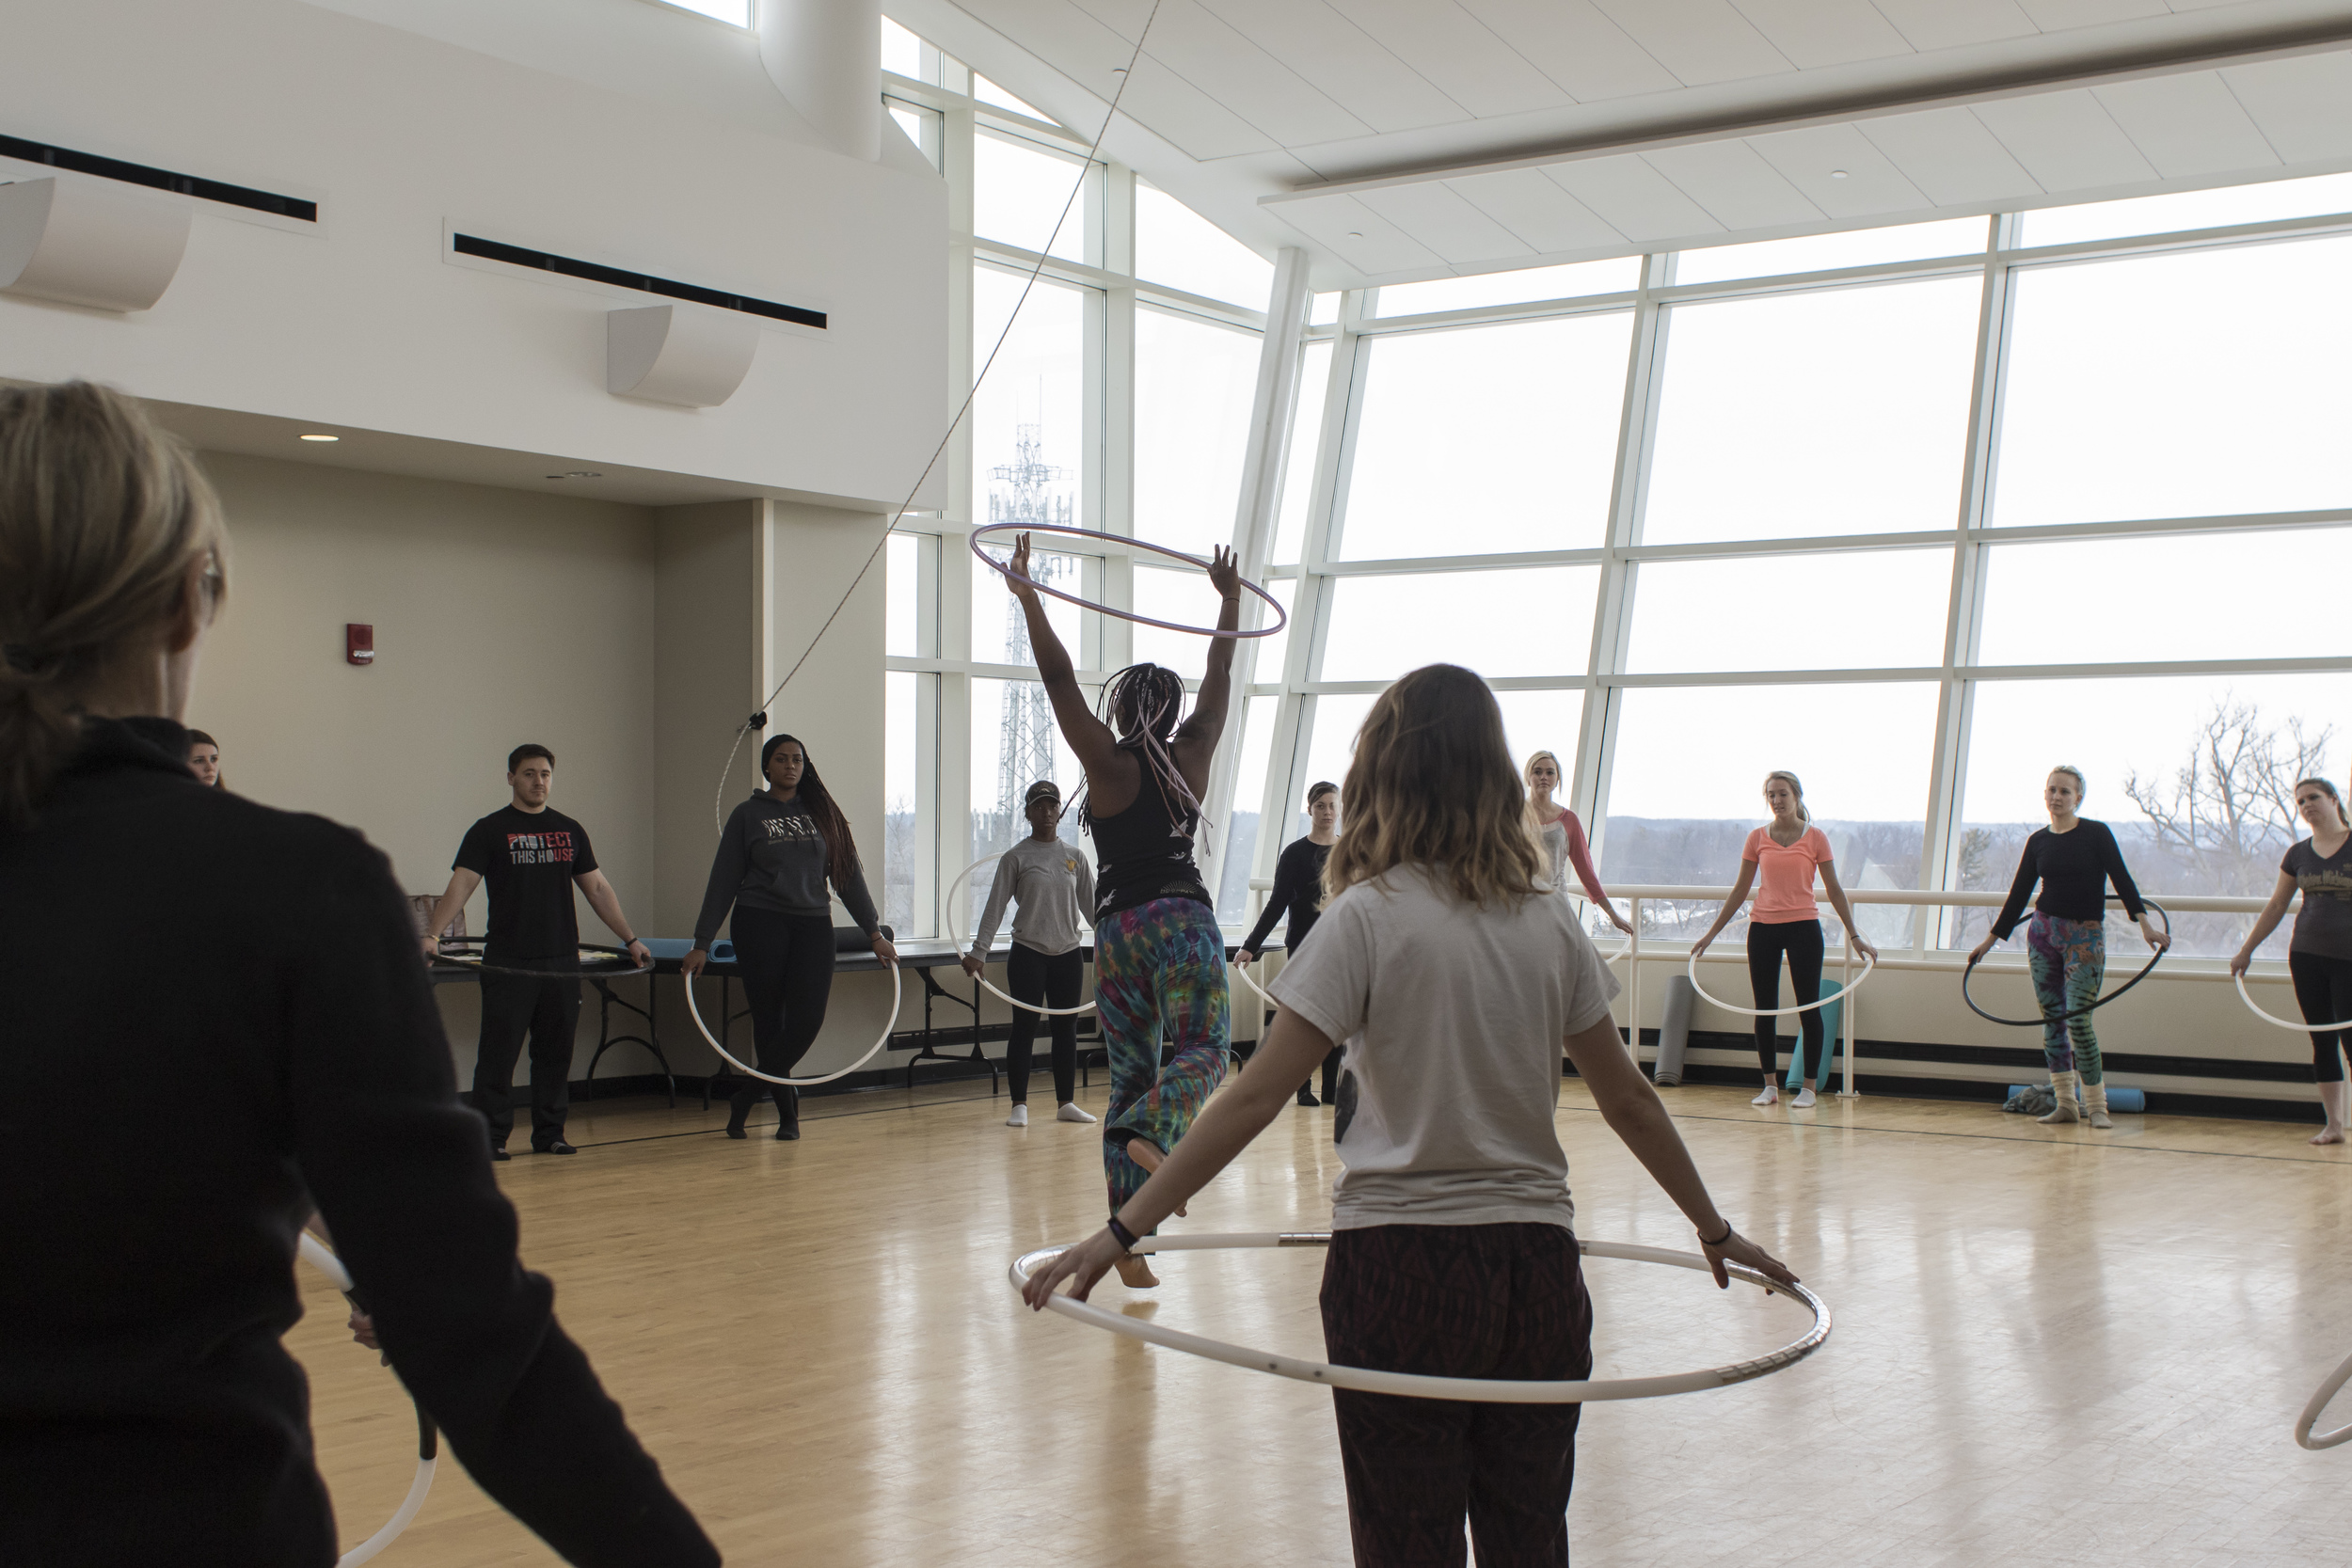 """Shani showed off some of the more advanced hoop tricks and movement combinations. Danna commented that her demonstration was """"full of flow and grace and quiet drama."""""""